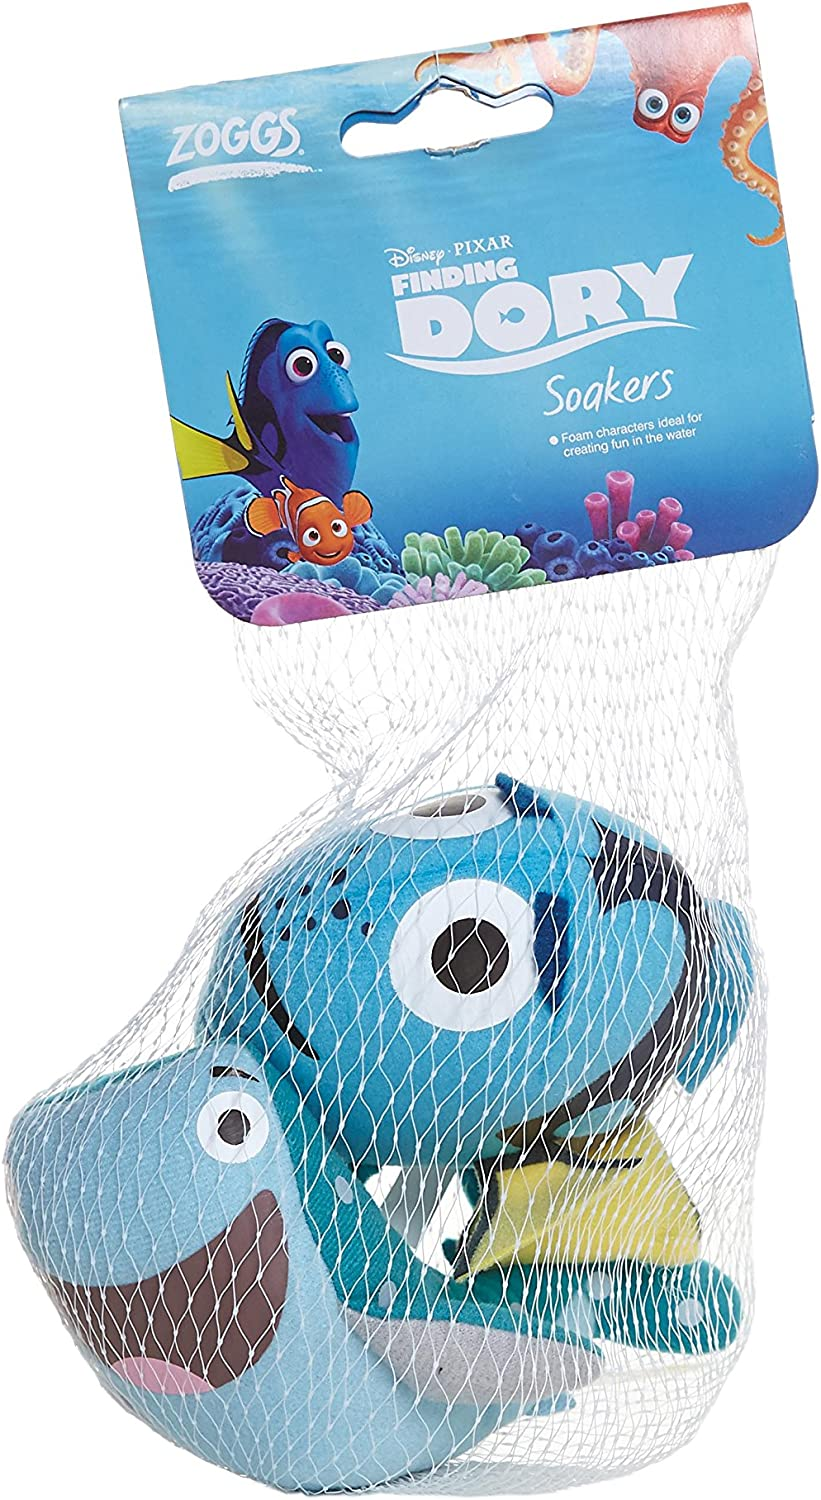 Safe for Above 3 Months Zoggs Kids Soaker Pool /& Bath Toys